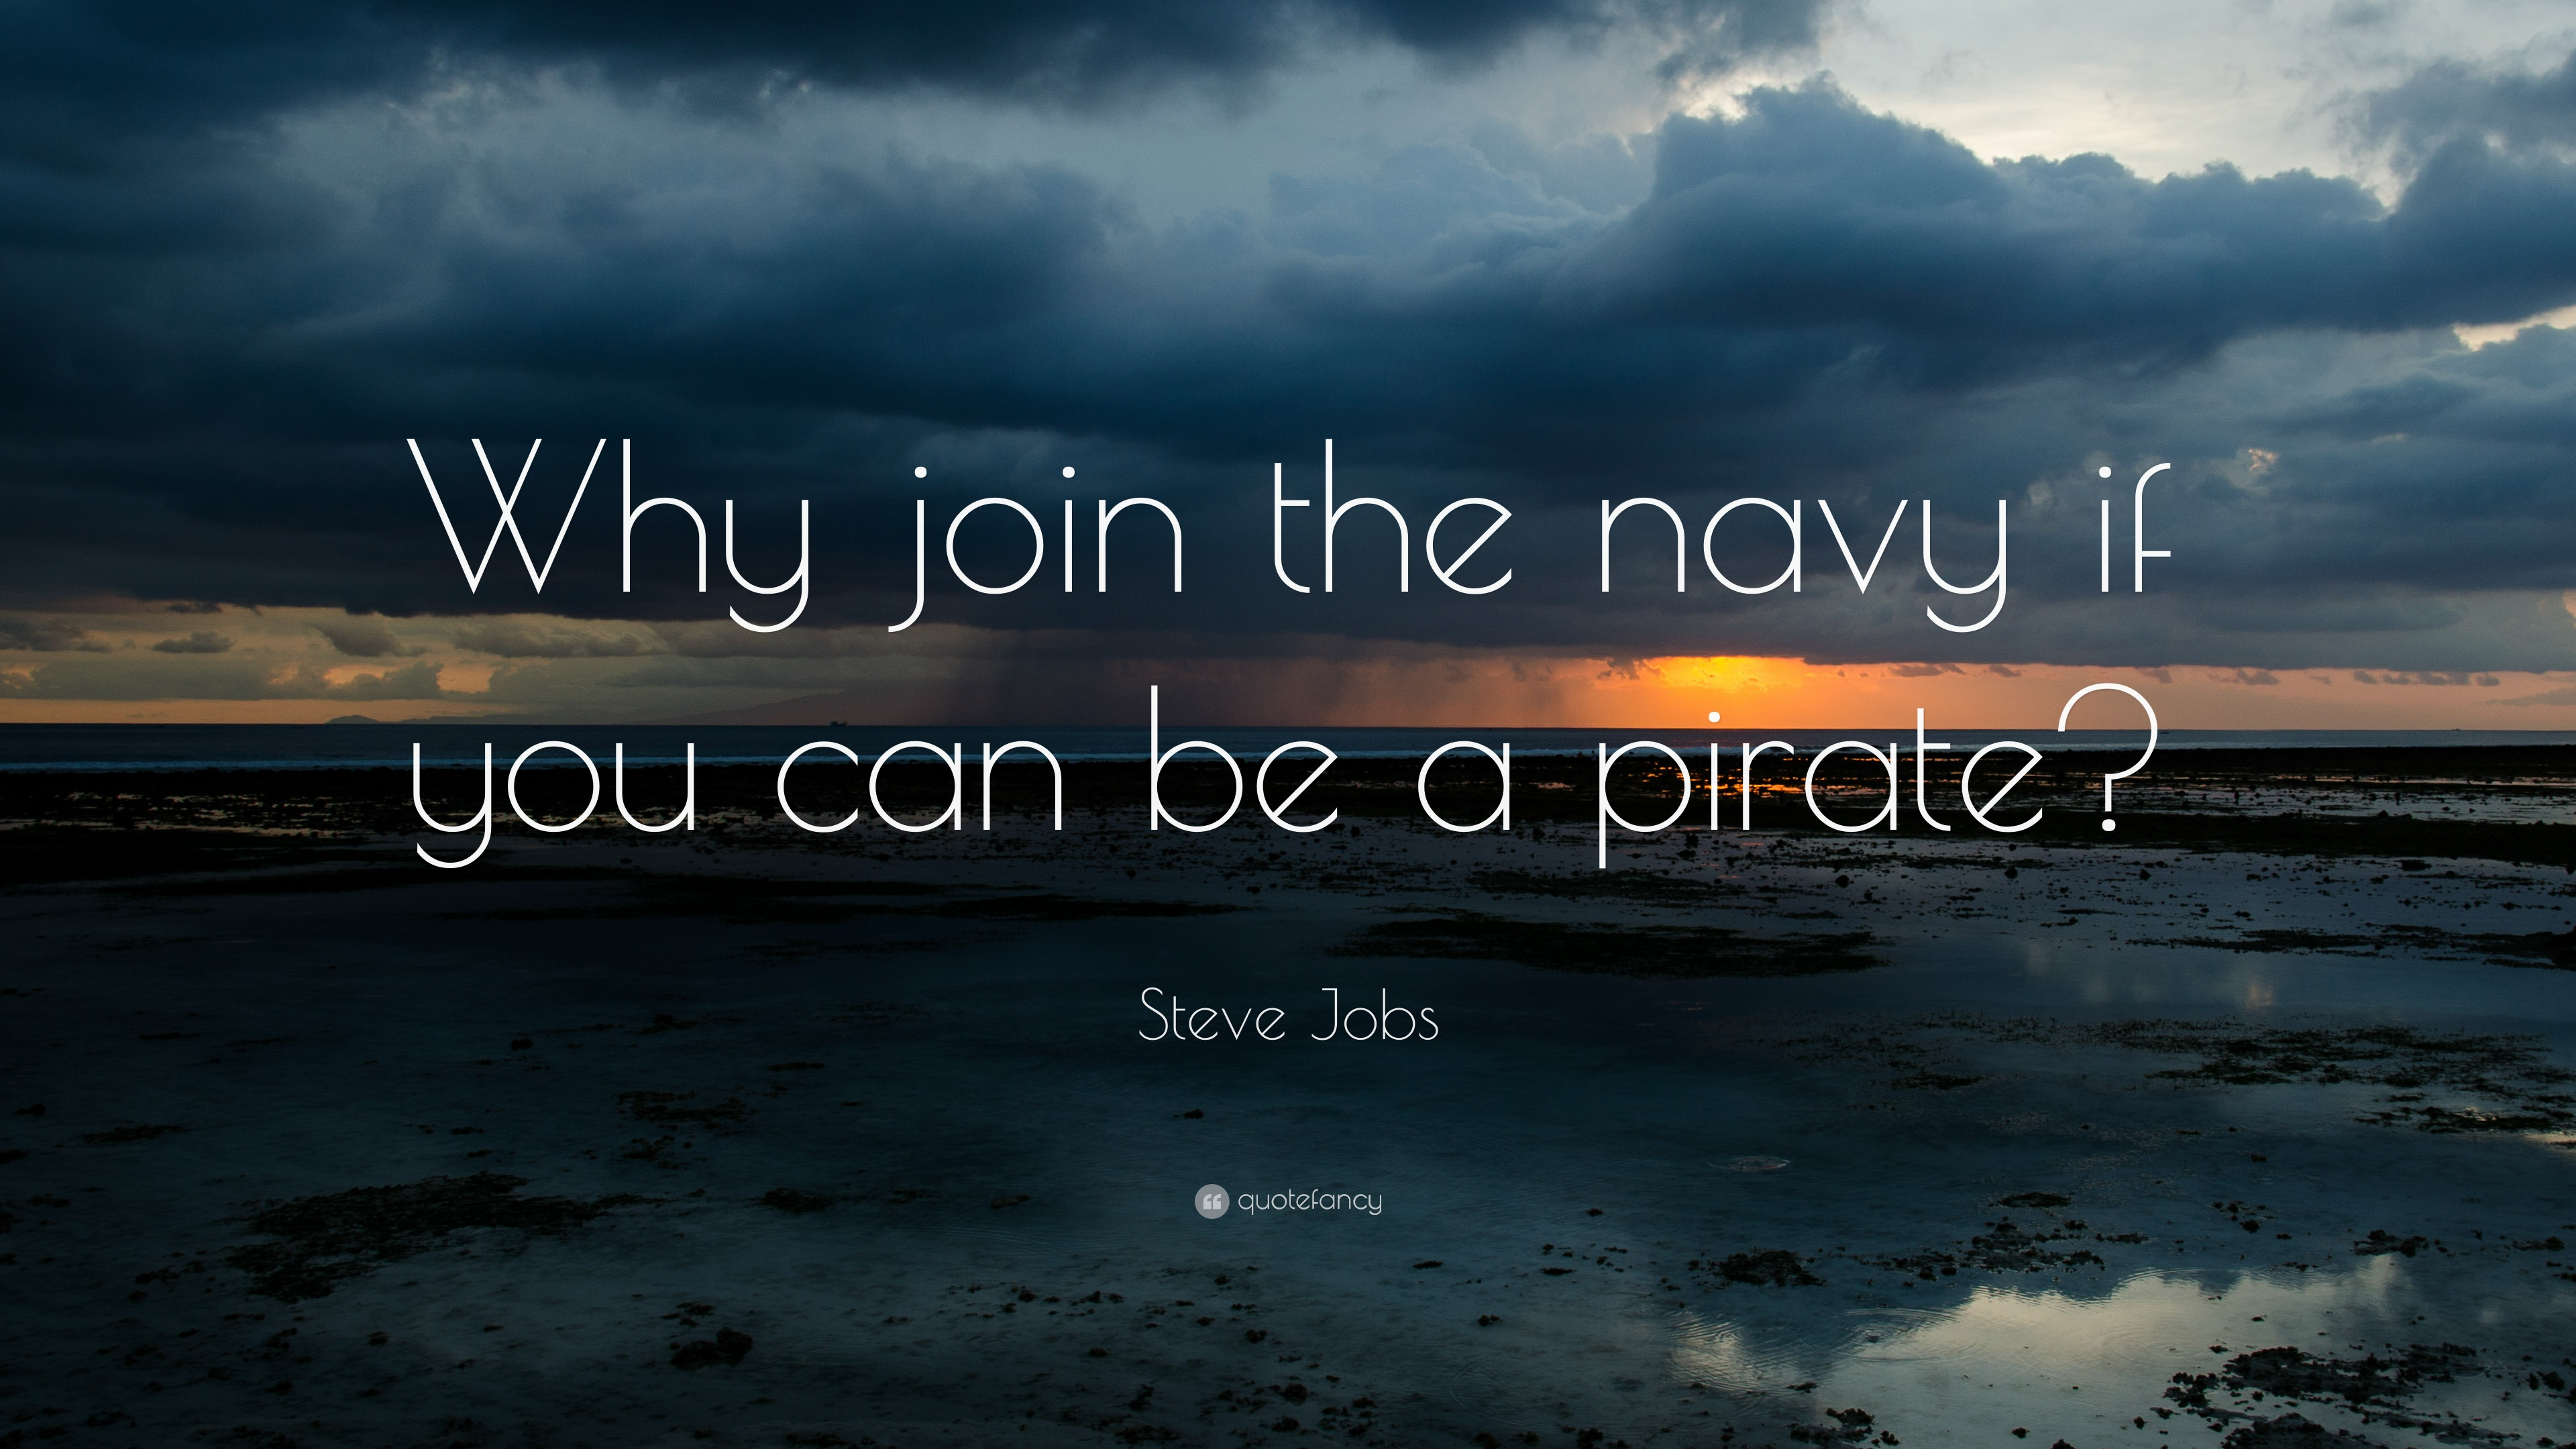 26 Wallpapers. Funny Quotes: U201cWhy Join The Navy If You Can Be A Pirate?u201d